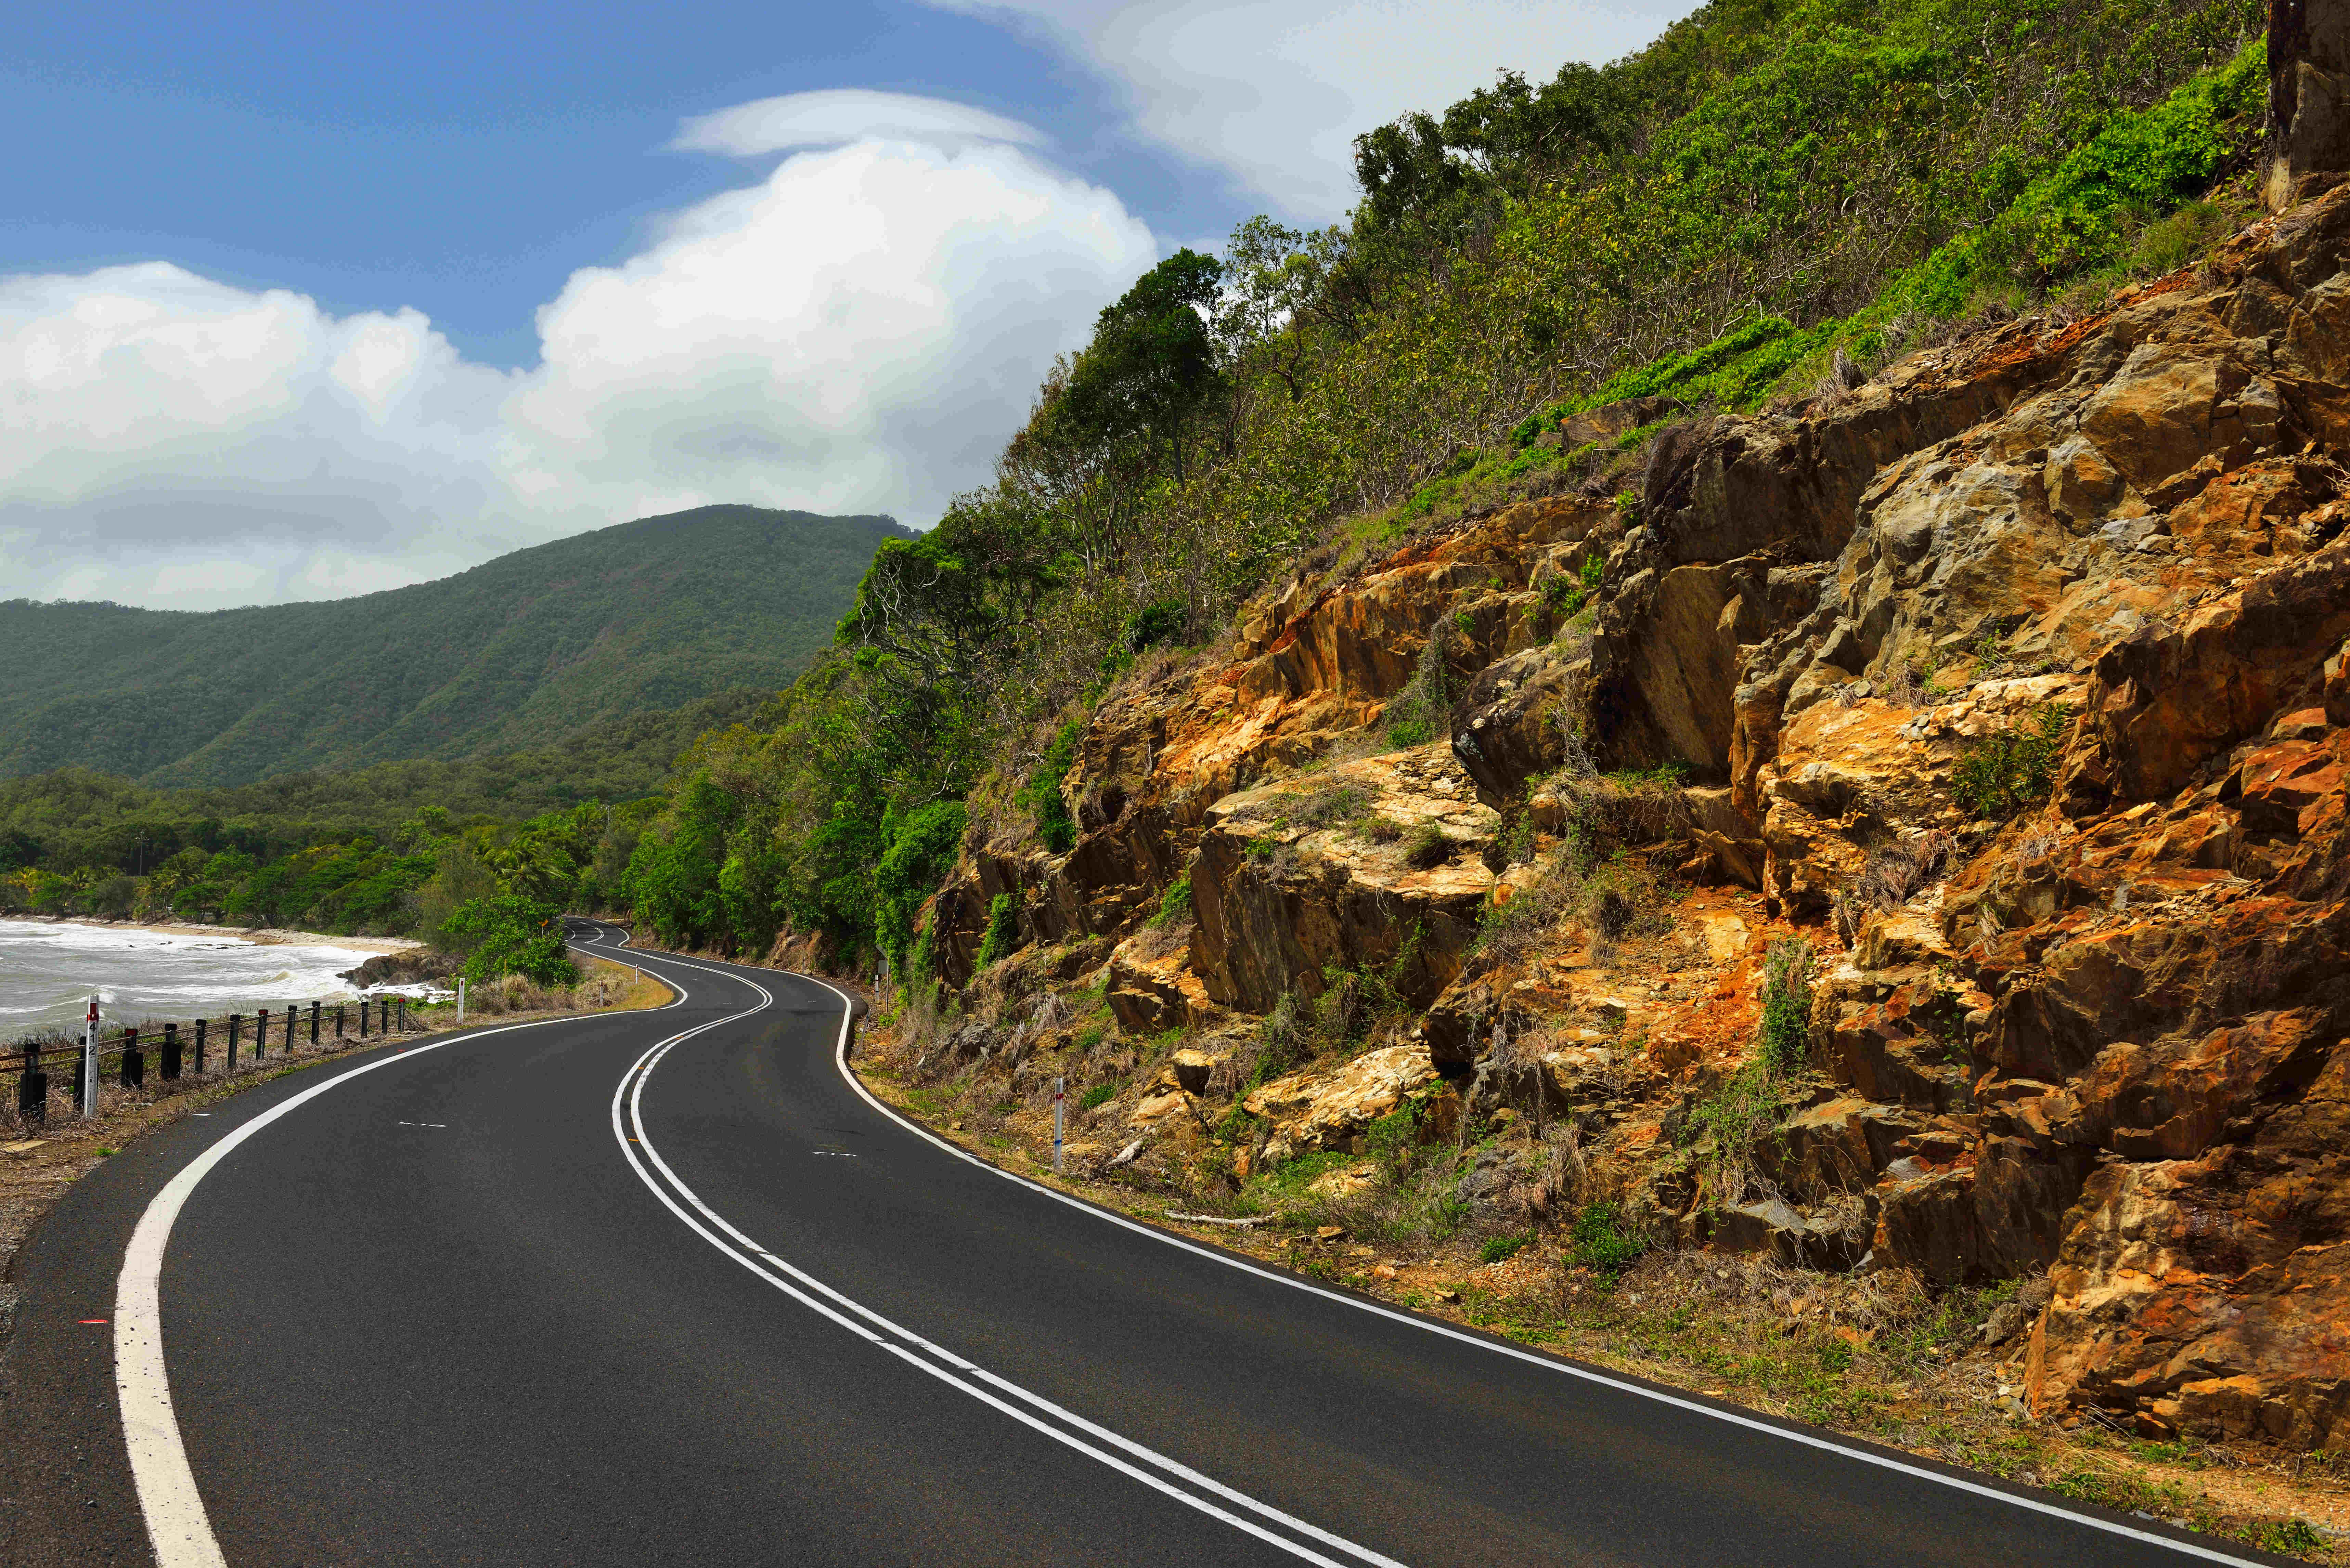 queensland to build one of the world s longest electric highways